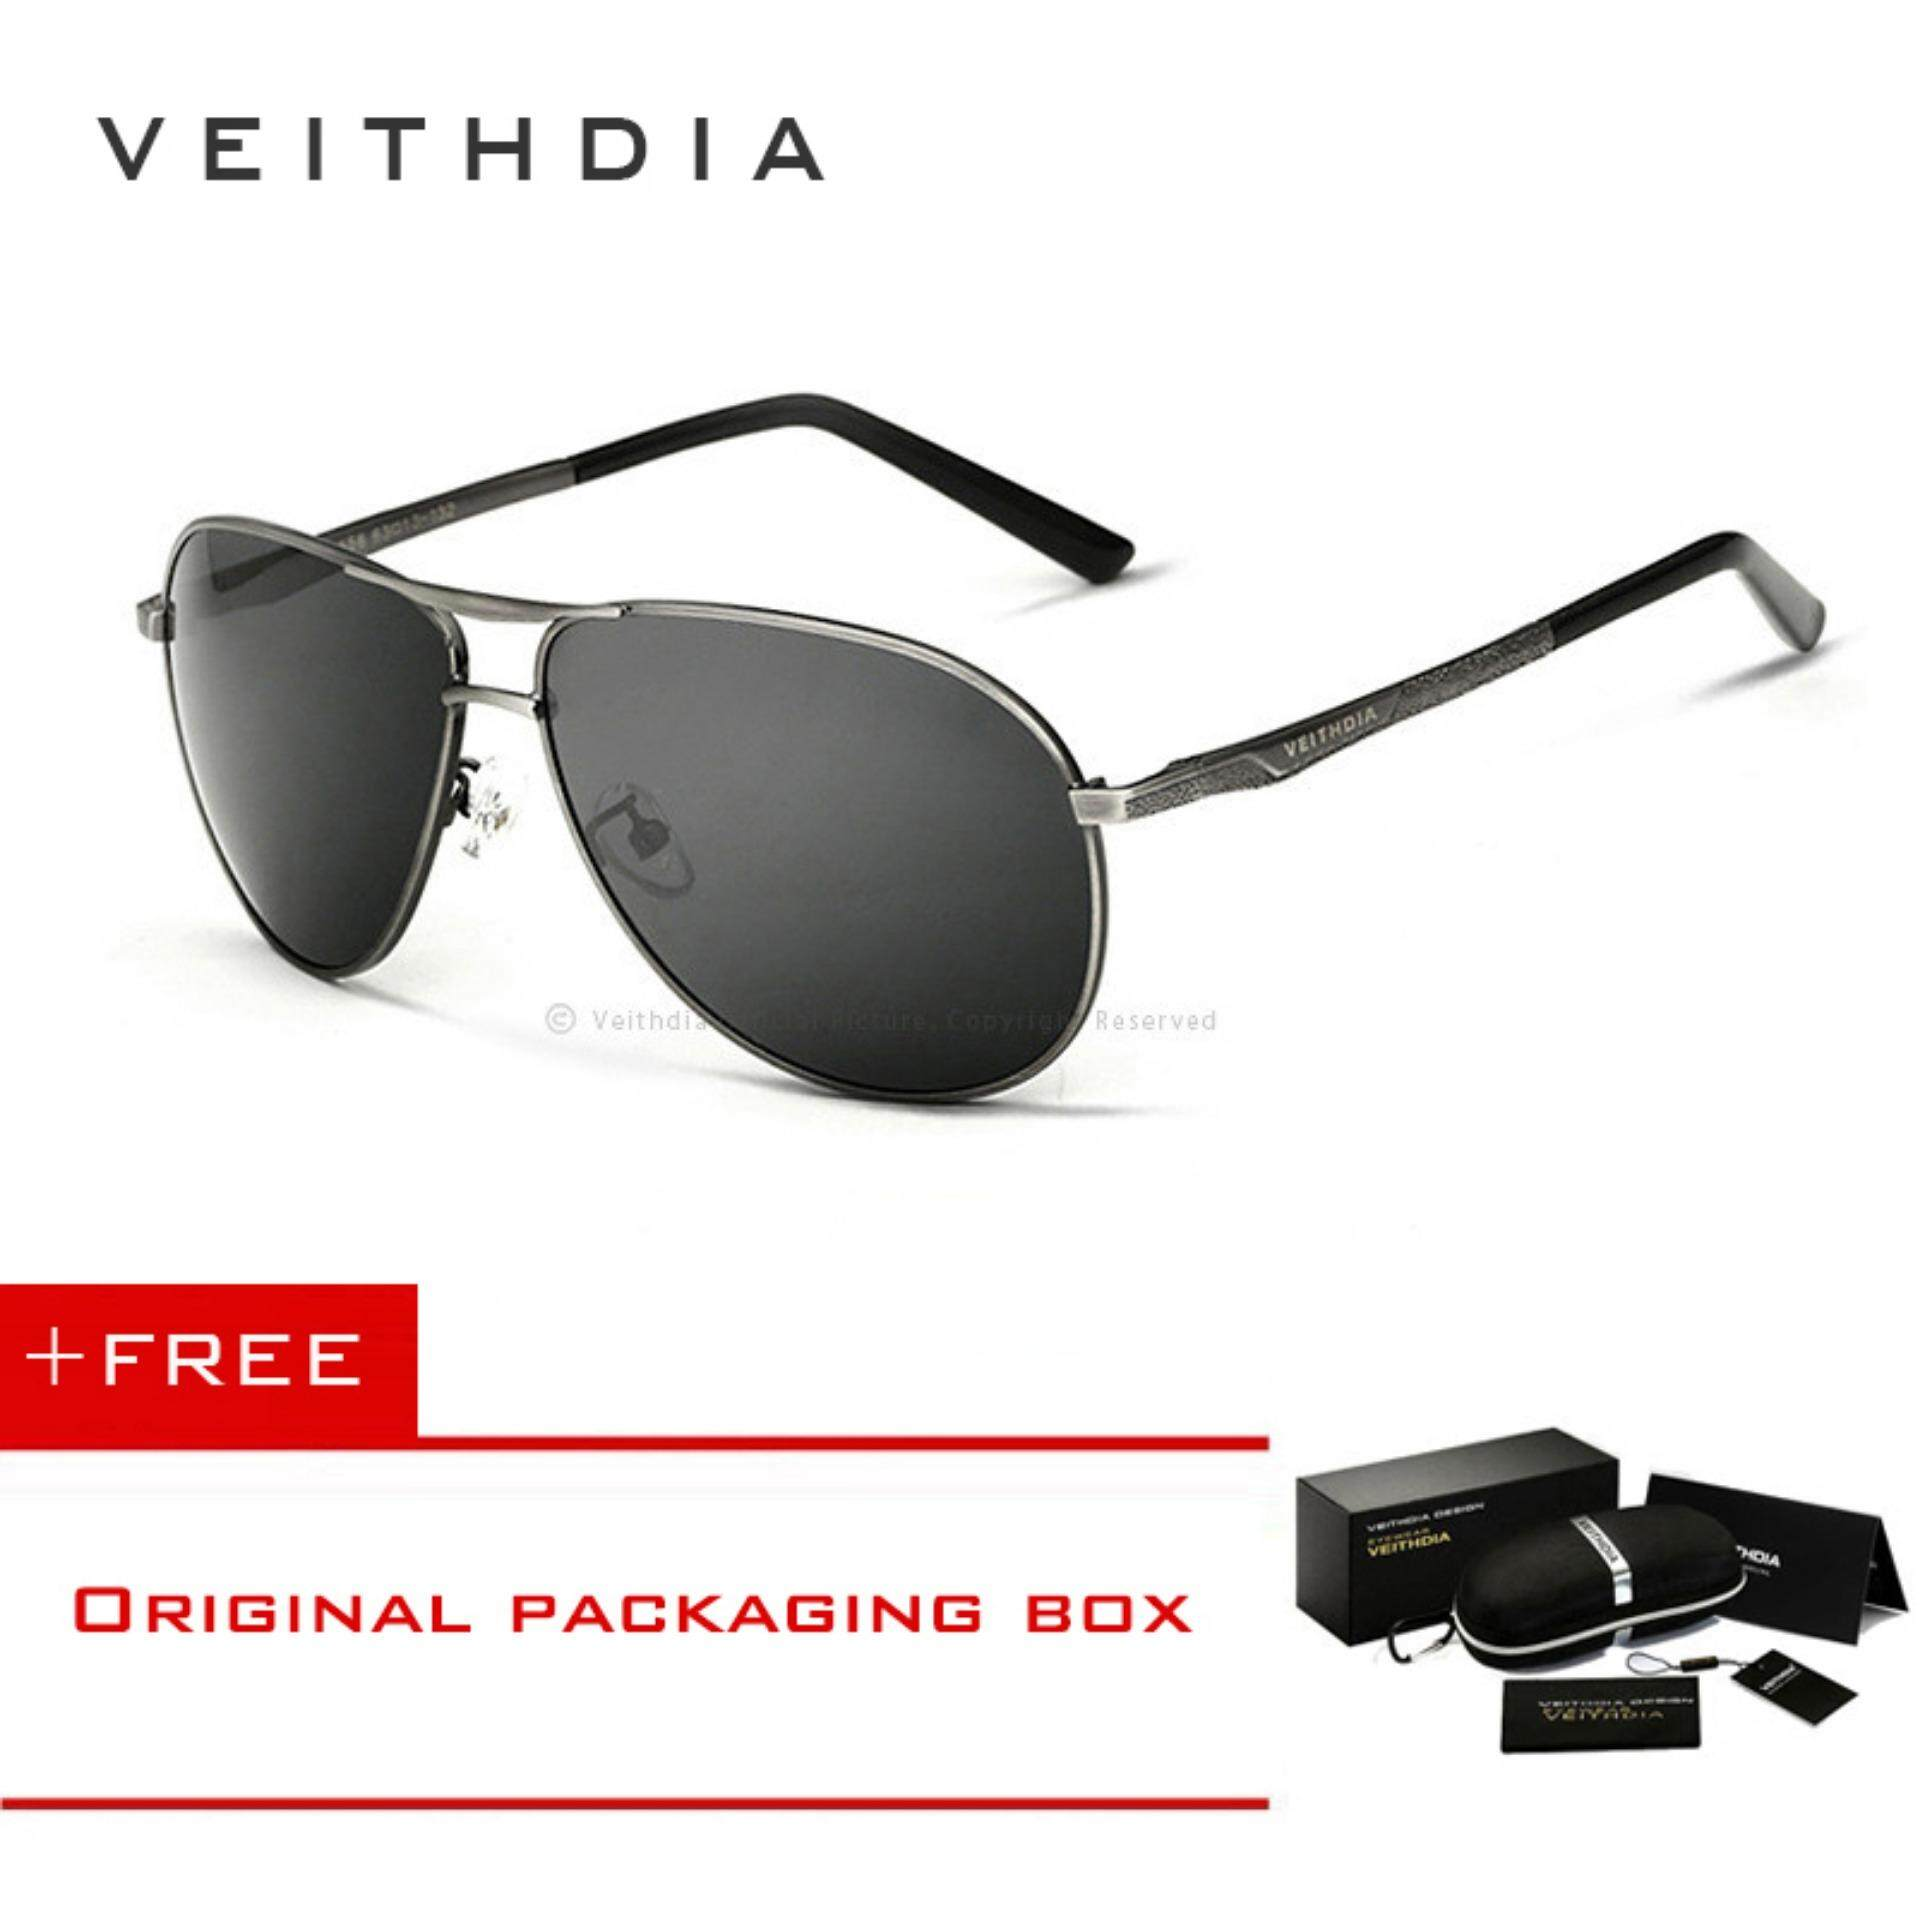 VEITHDIA Brand Classic Fashion Men's Sunglasses Polarized Eyewear Accessories Glasses Men/Women 2556